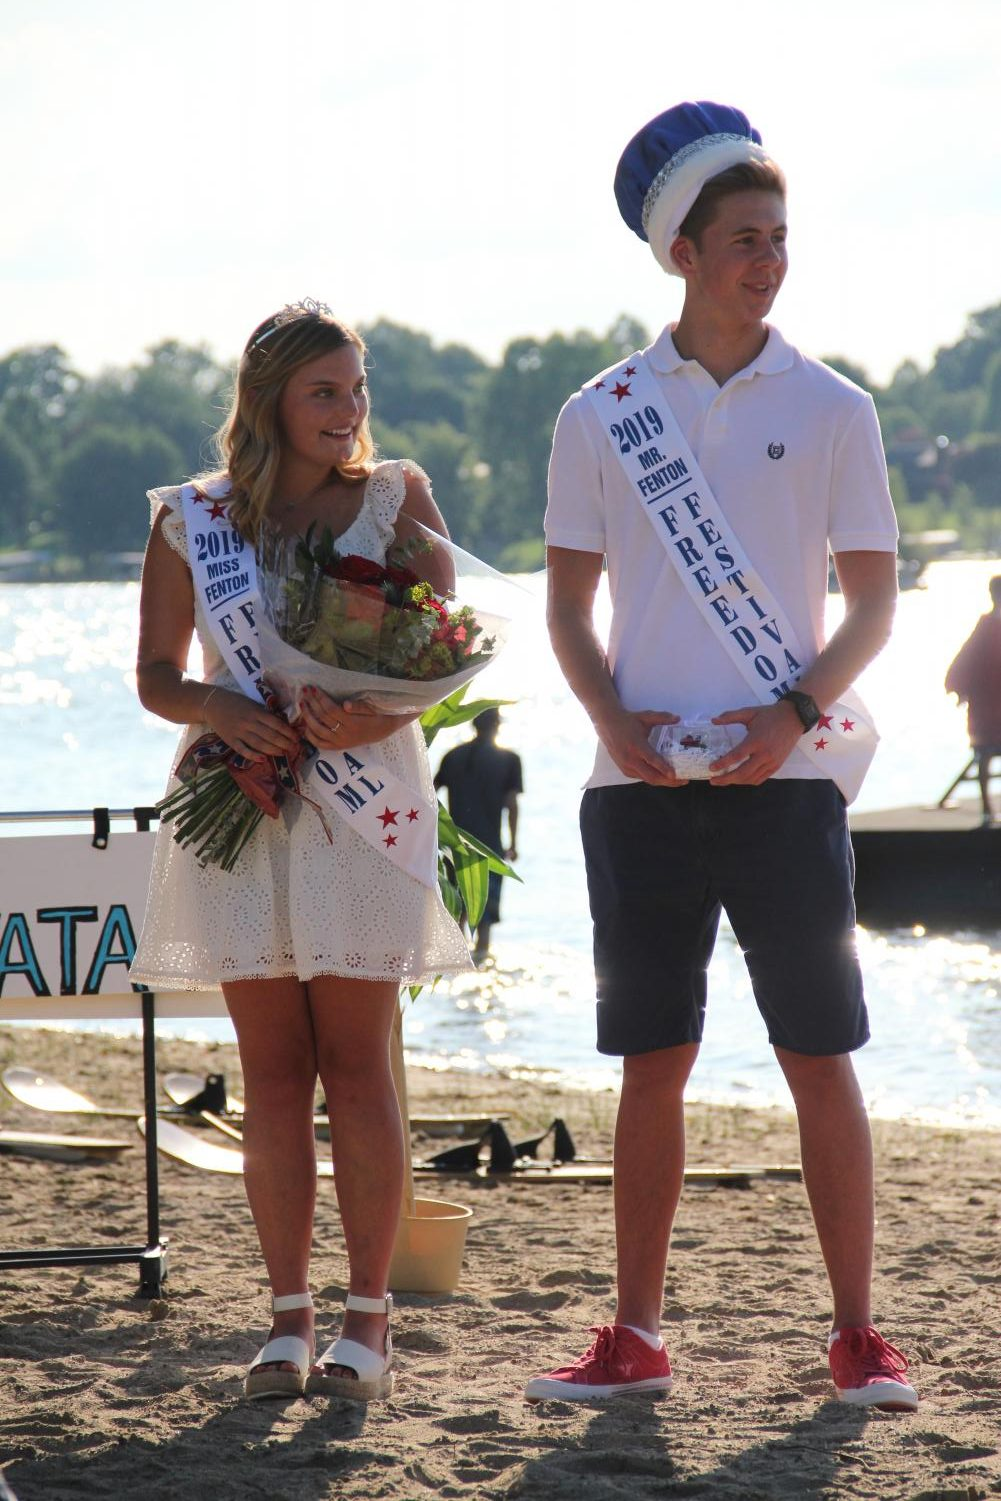 As they receive their crowns, seniors Kaitlin Gruber and Jacob Novak stand side by side at the freedom festival crowning ceremony on July 3rd.